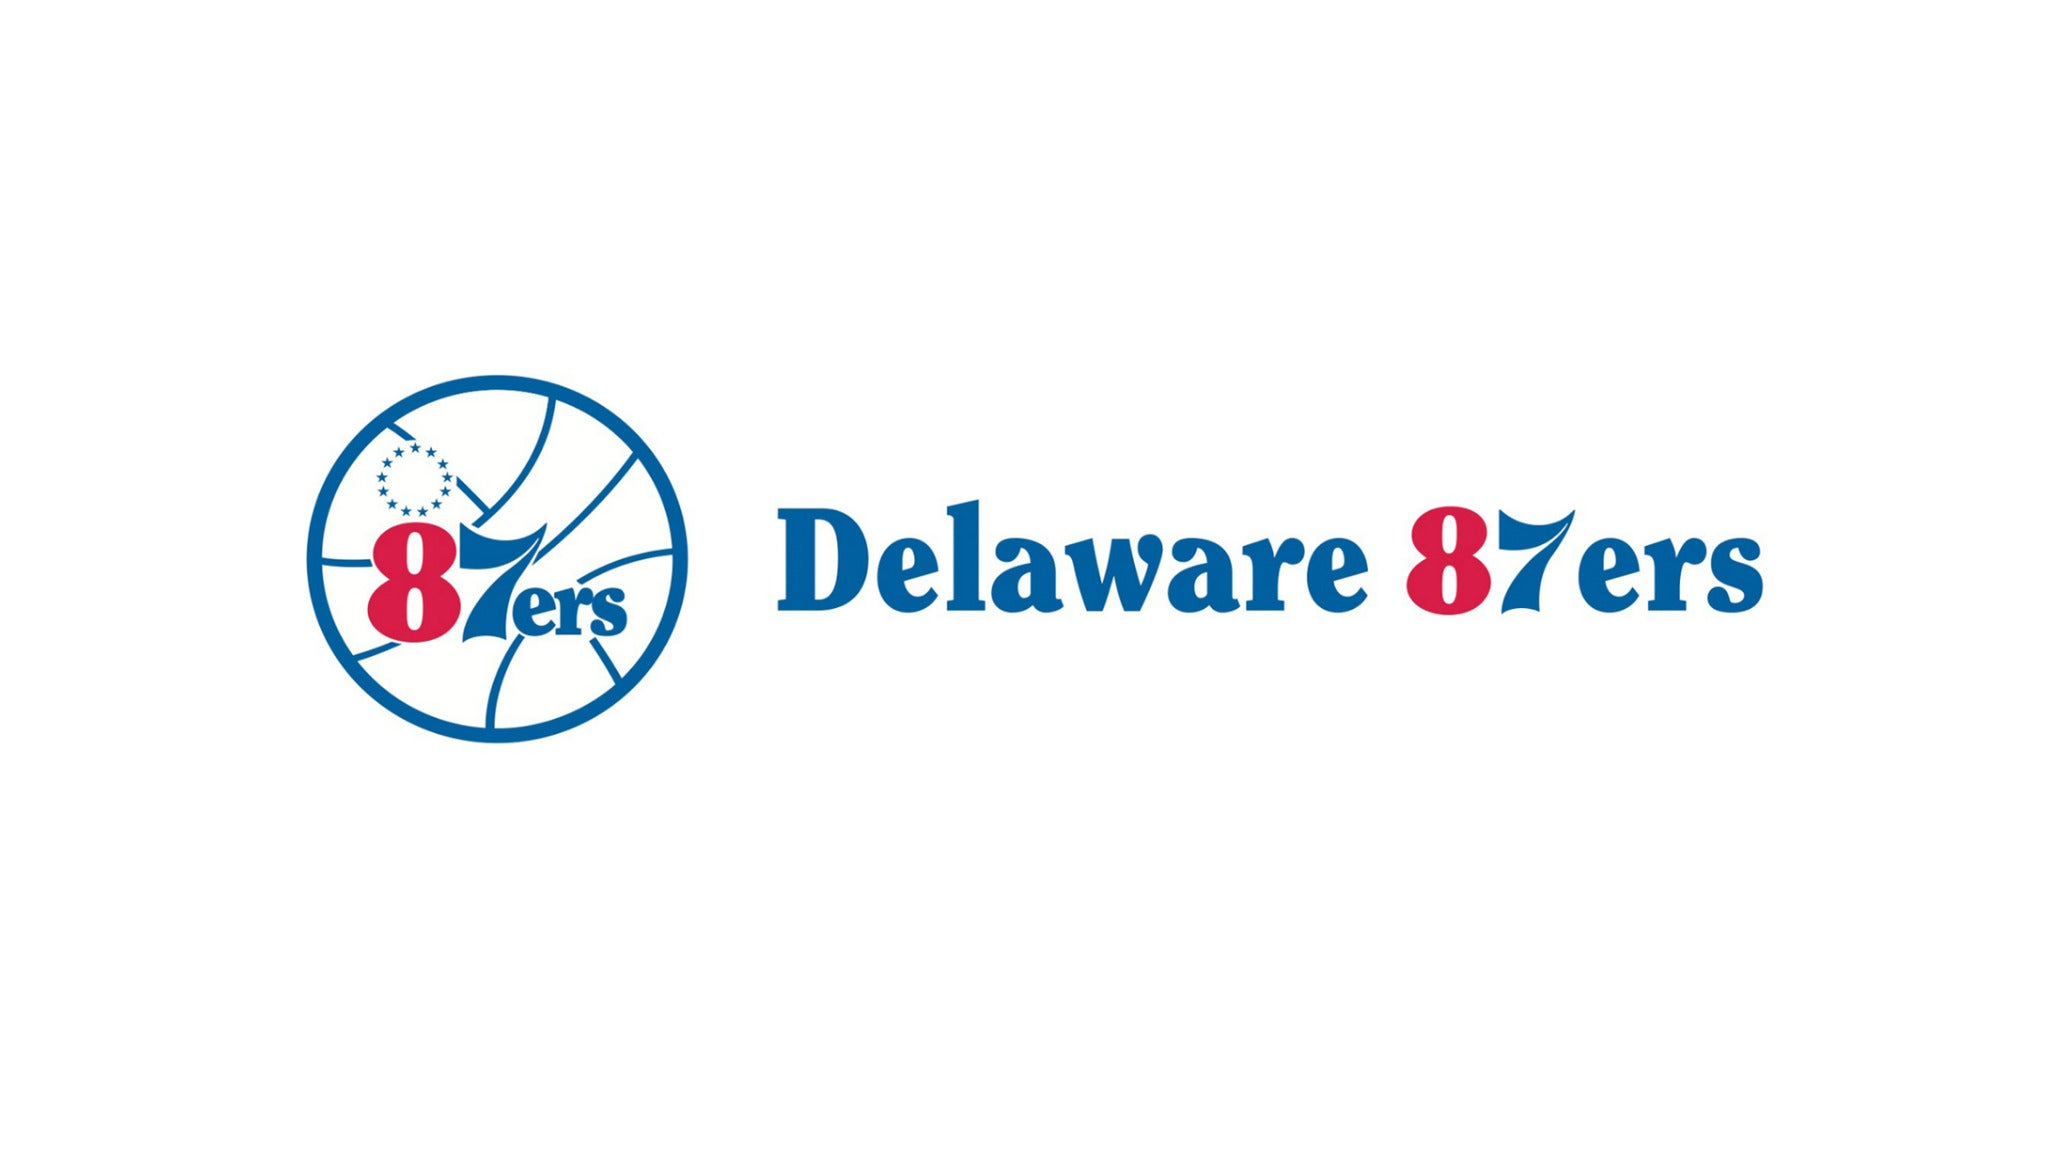 Delaware 87ers vs. Ft. Wayne Mad Ants